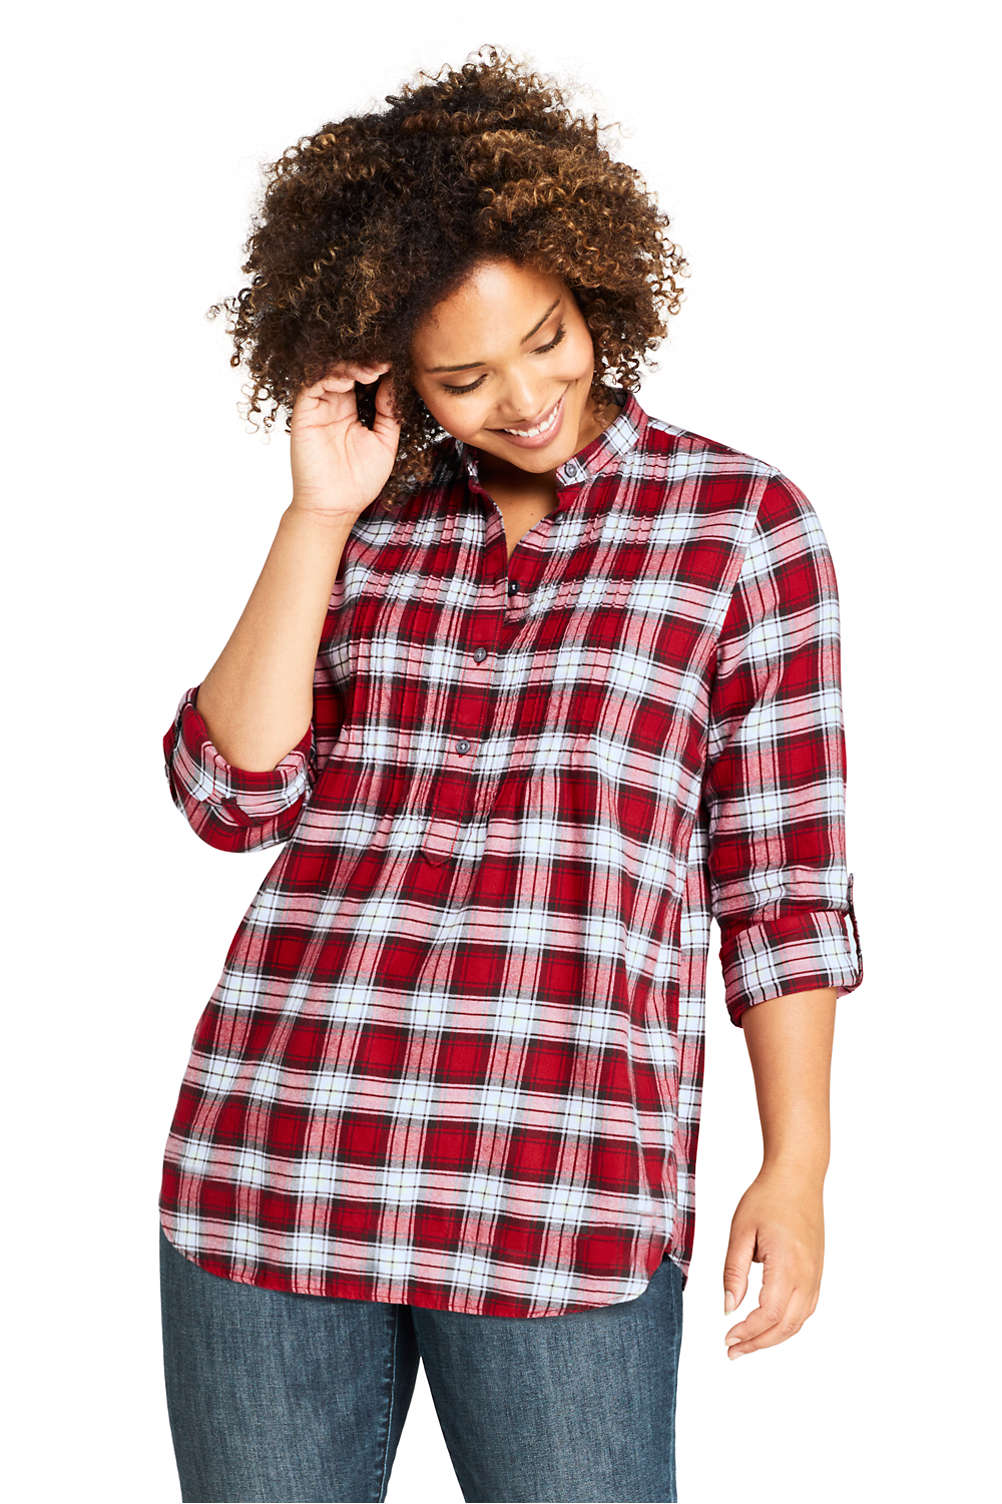 best selection of 2019 hot-selling genuine limited sale Women's Plus Size Flannel Tunic Top